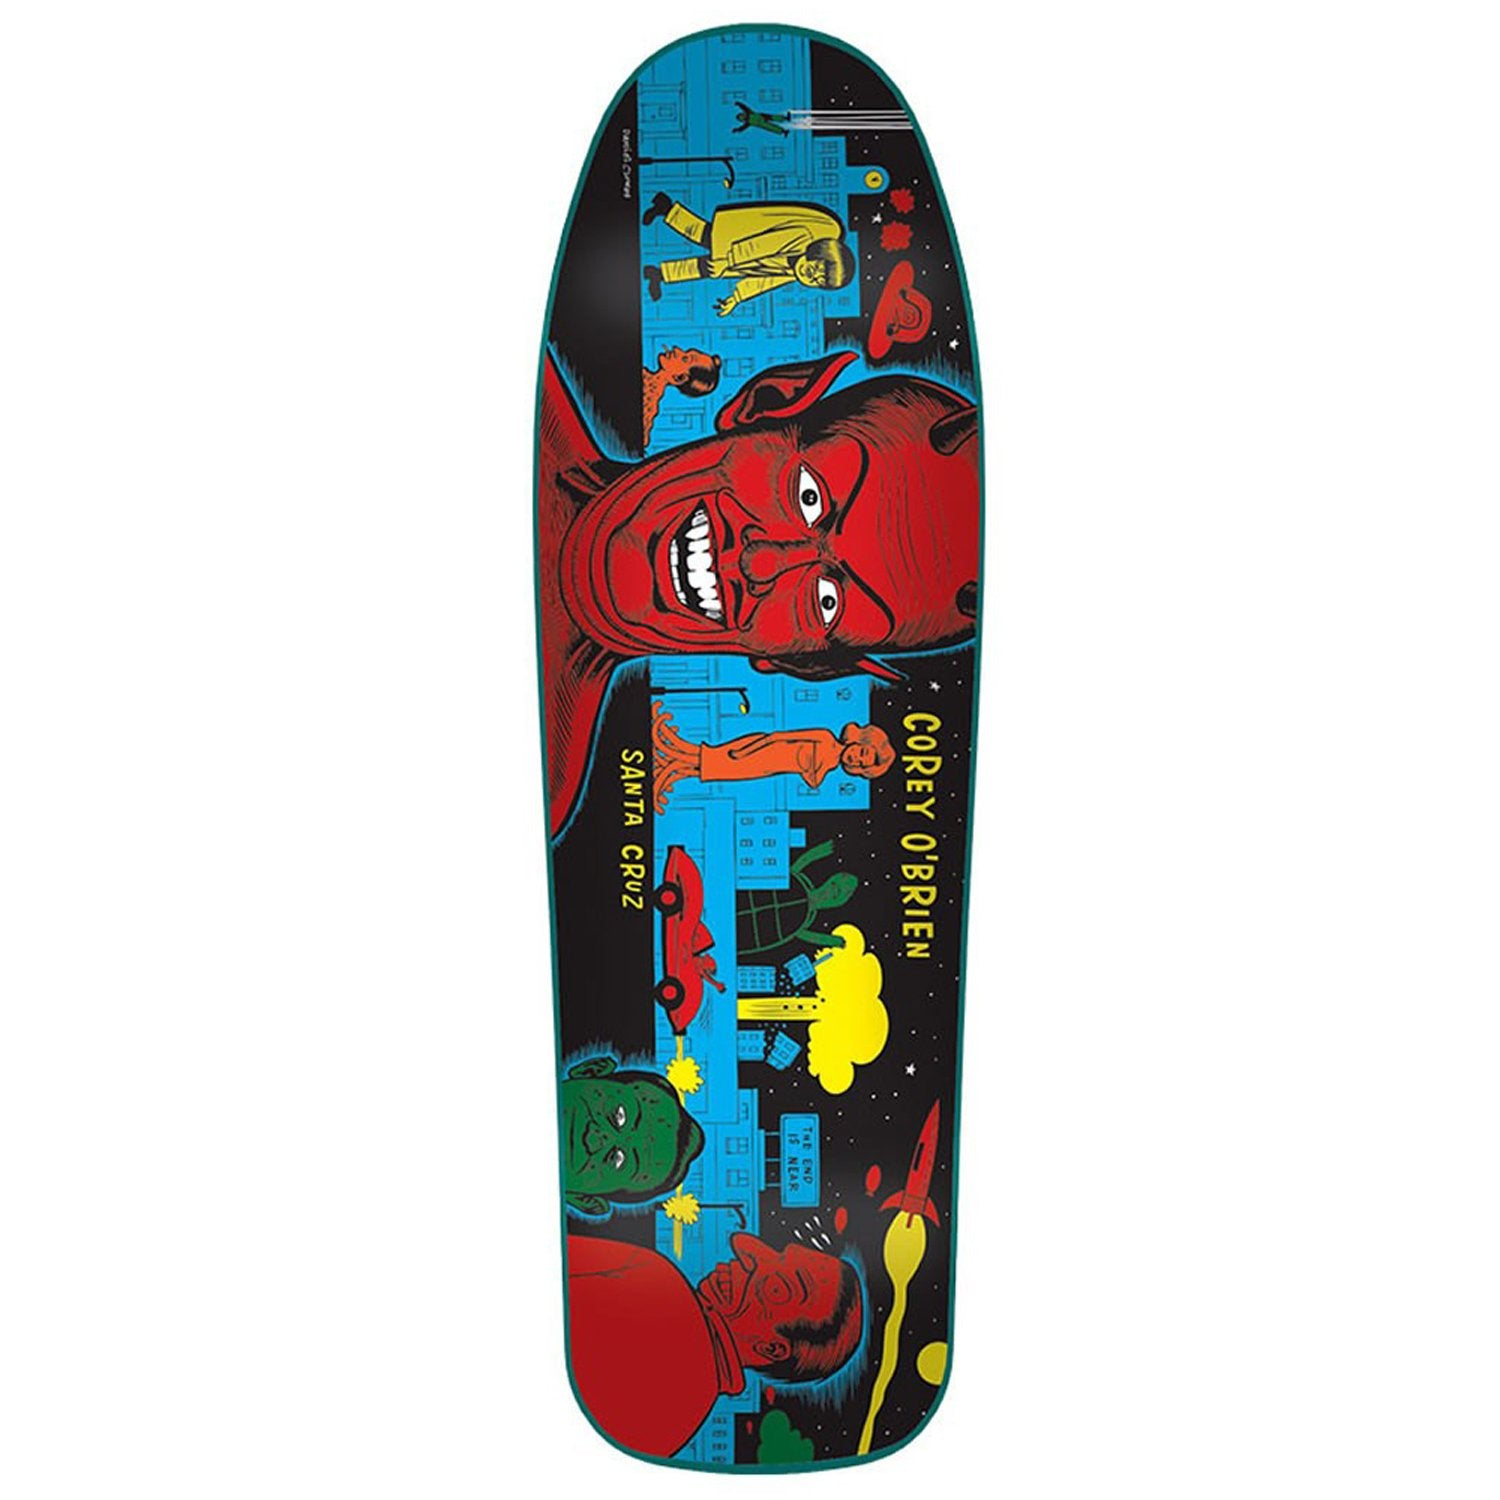 SANTA CRUZ O'BRIEN MUTANT CITY REISSUE DECK - 9.75